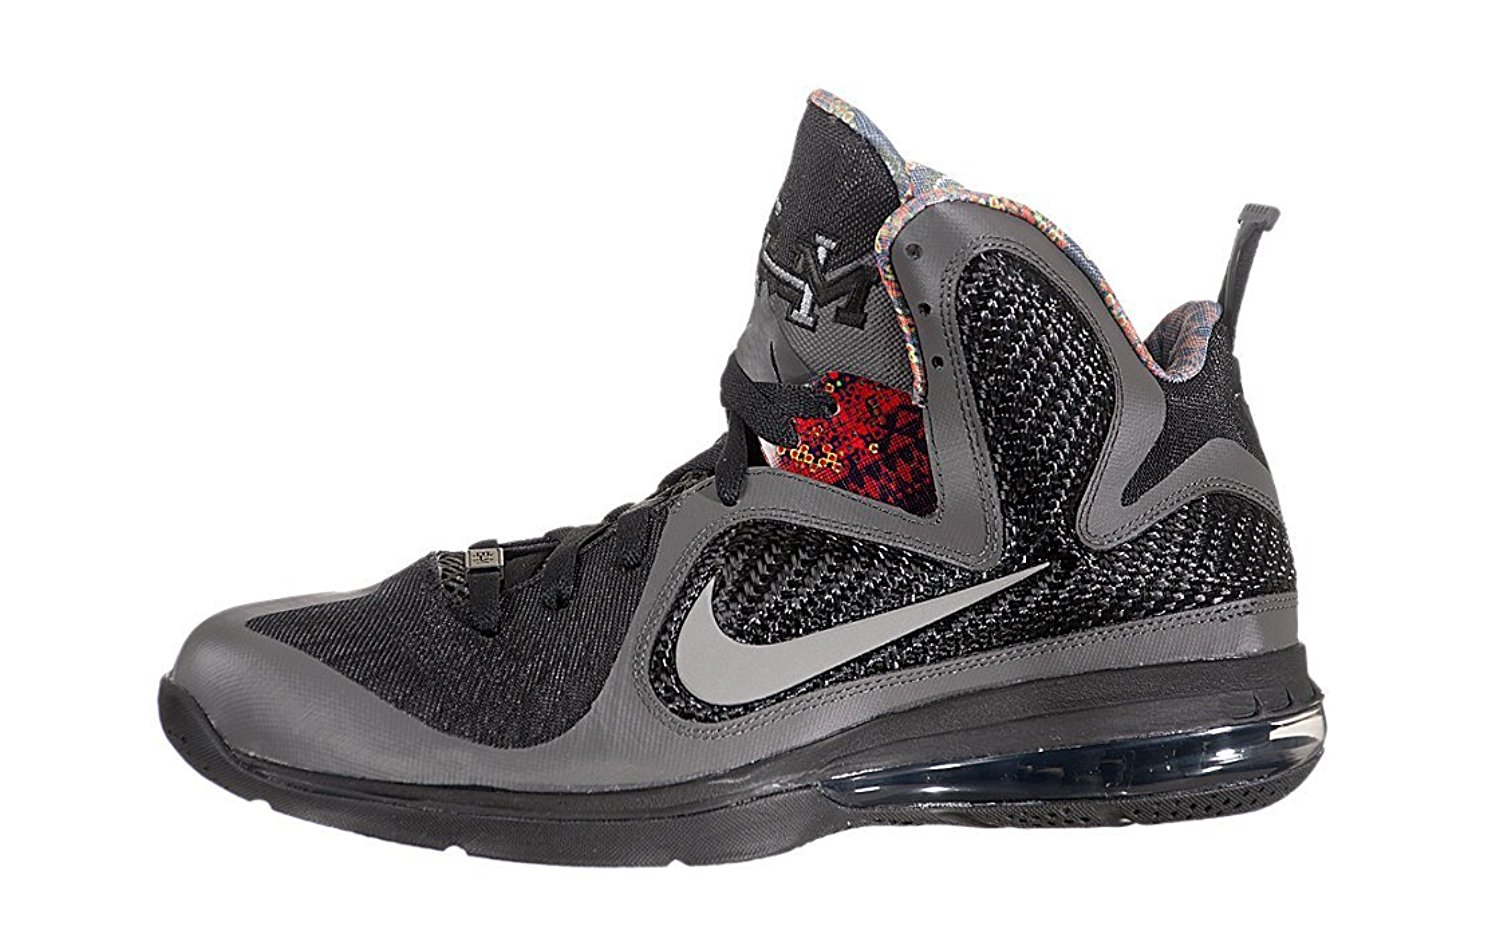 new style 2e622 2acac Get Quotations · Nike LeBron 9 BHM Black History Month (530962-001)